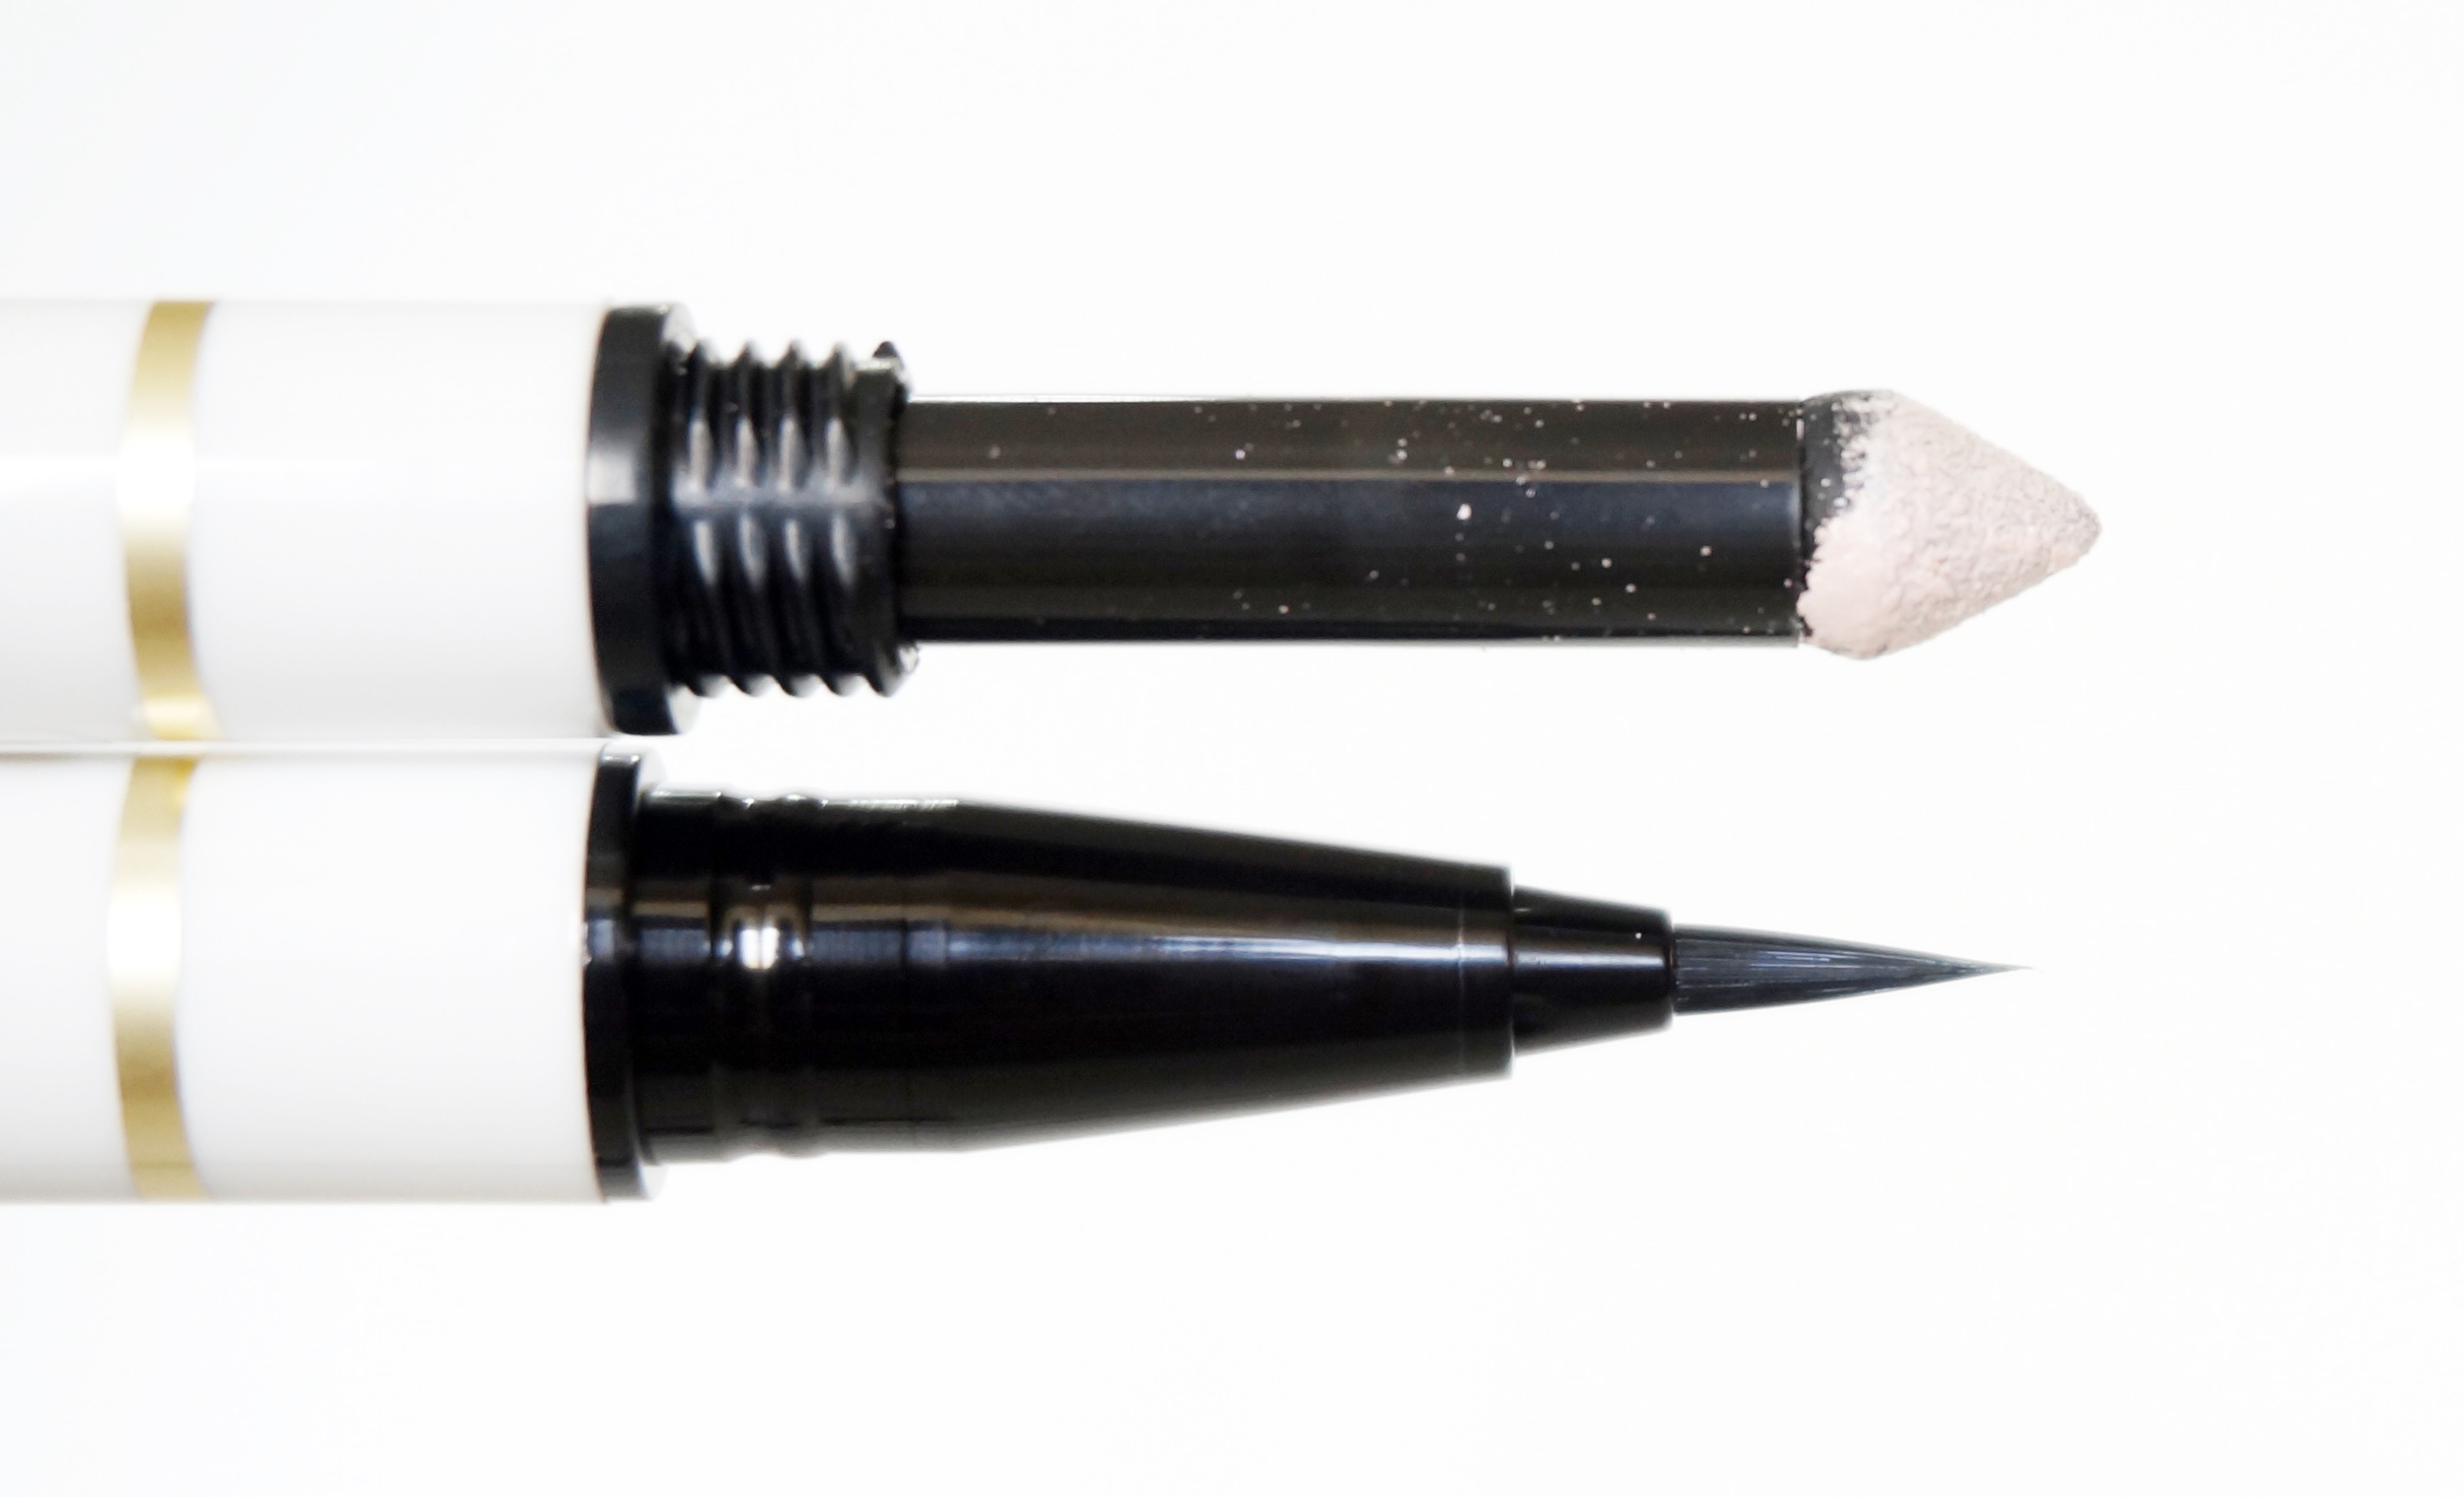 The sponge tip is the same as the one in their eyebrow duos. It's a bit challenging to maneuver around the lids at first, but it's pretty easy once you get the hang of it. I like drawing a thick brown line on my lids, with a slight wing, and then topping it with the paired eyeliner.